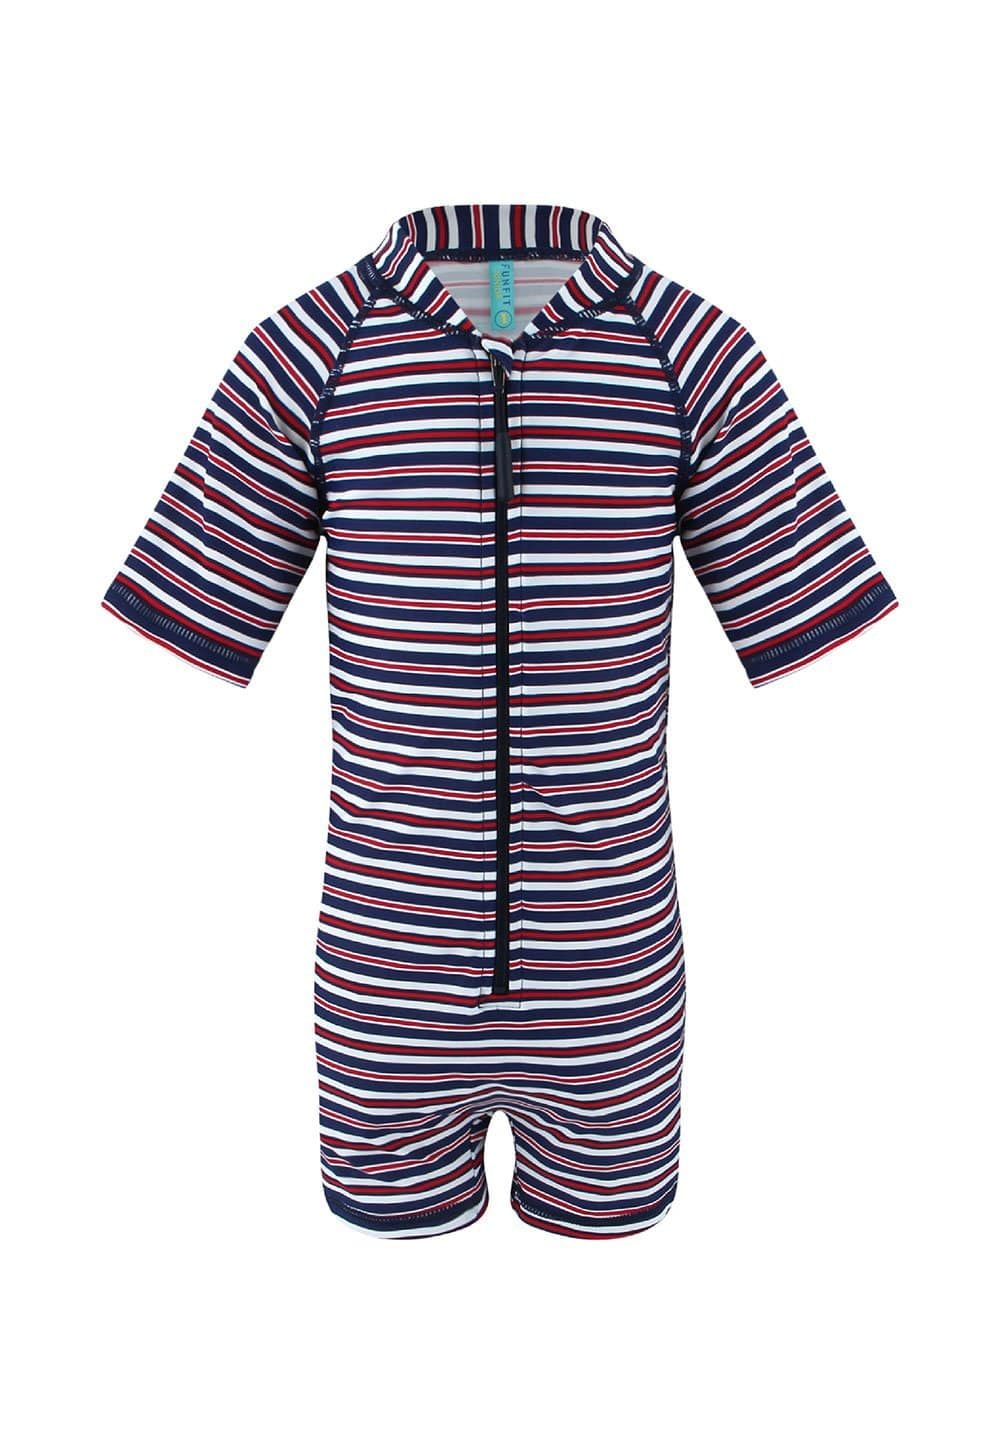 UPF50+ Junior sunsuit Half Sleeve (Unisex) in Starstruck Print